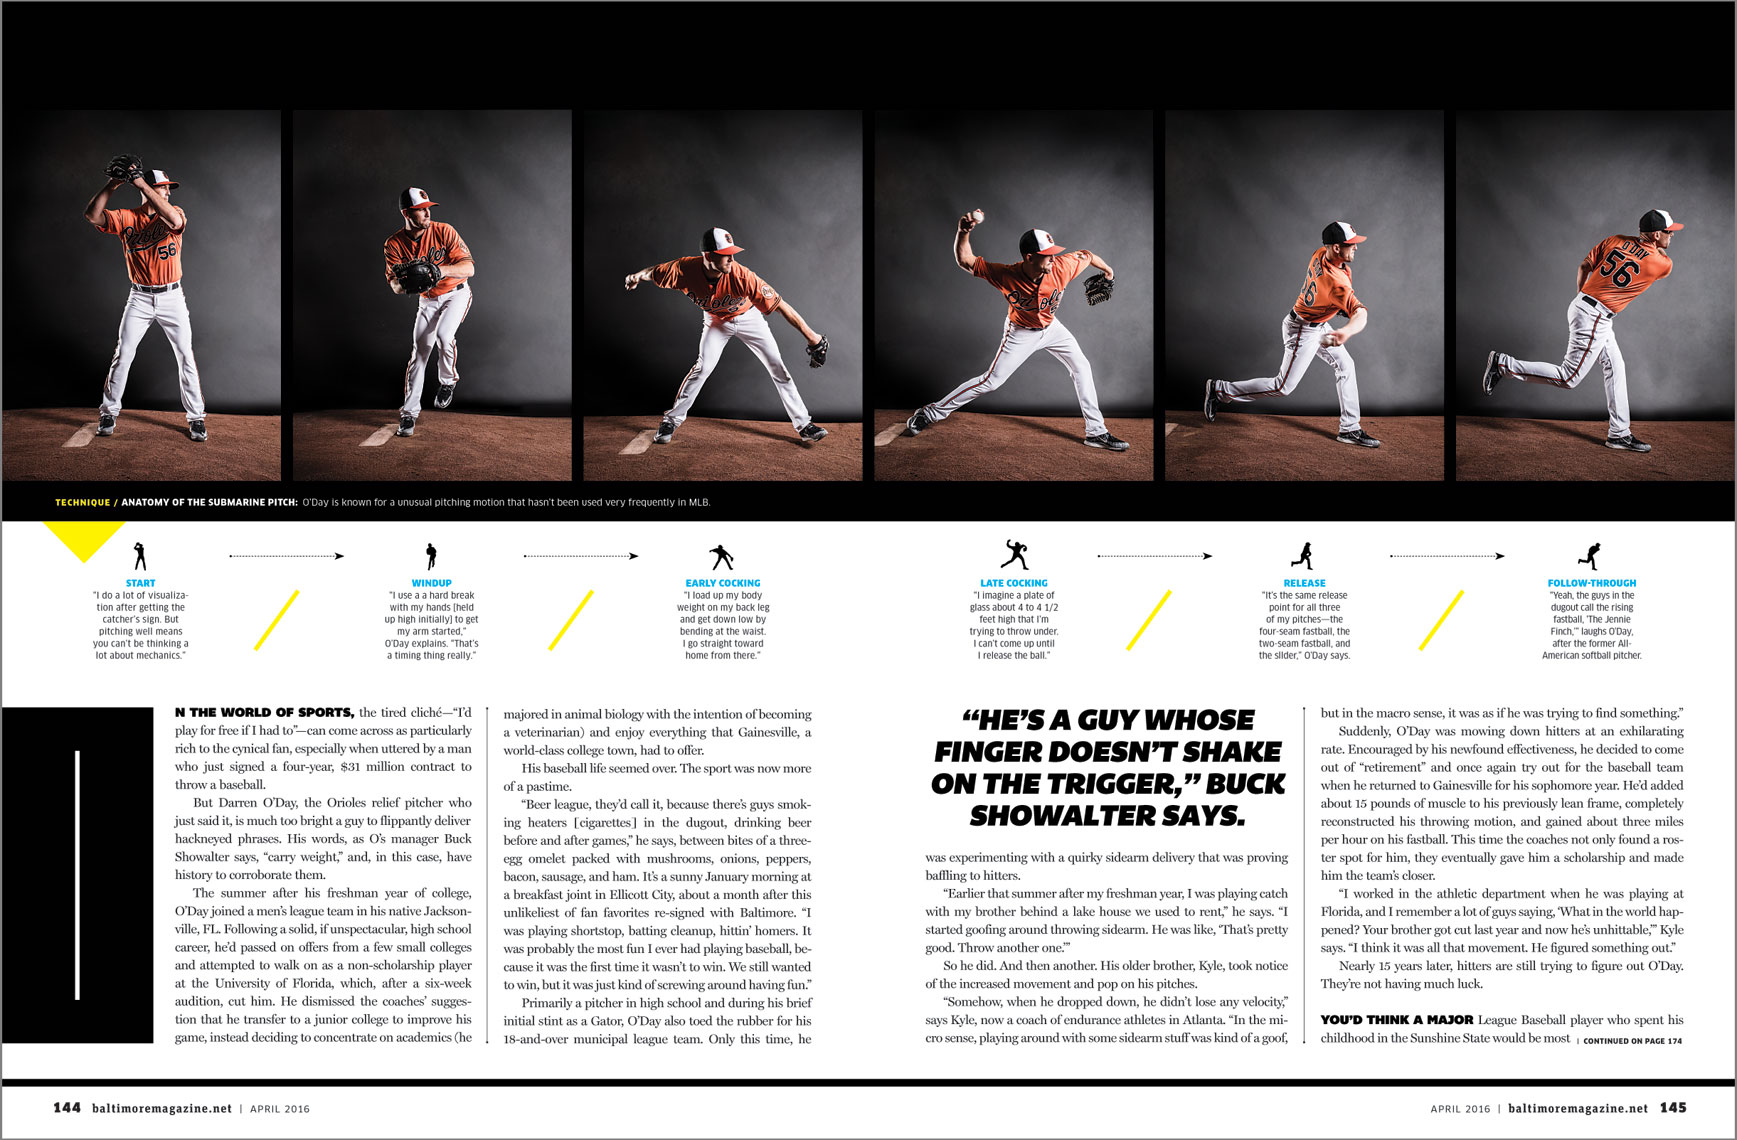 Baltimore Magazine spread featuring Baltimore Orioles submarine pitcher Darren O